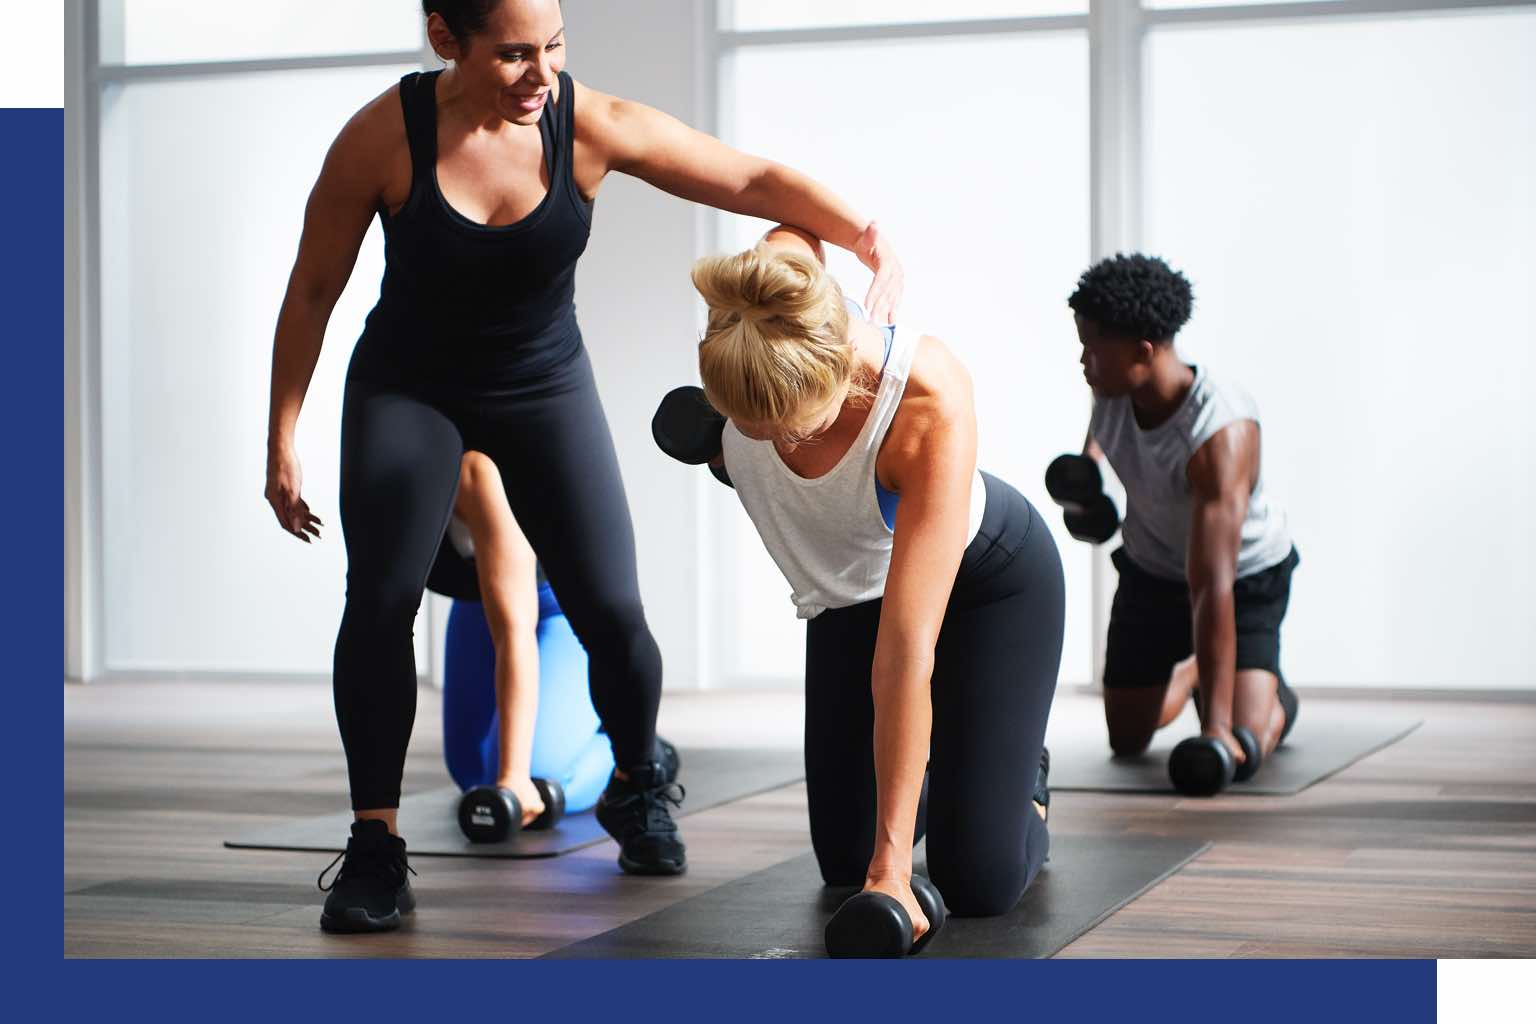 A woman doing a kneeling arm row with a teacher looking on and other participants in the background.